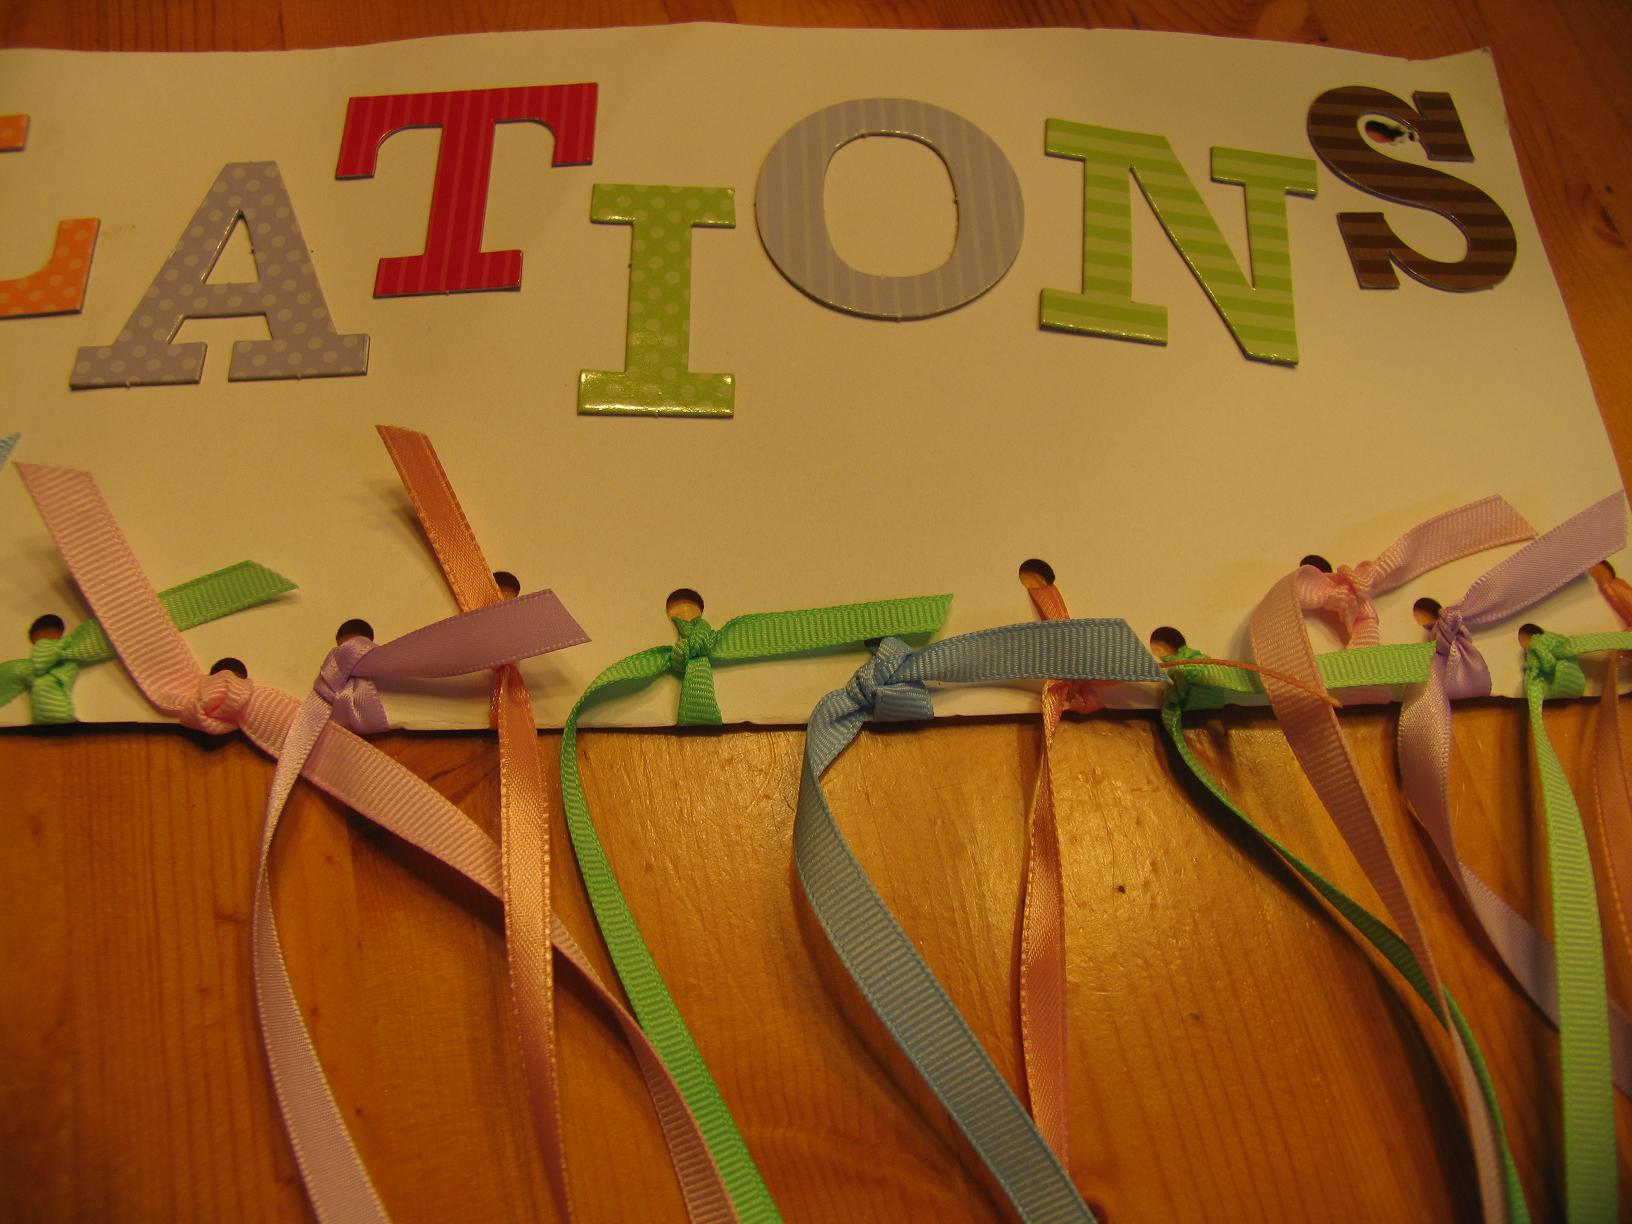 Pictures of how to tie ribbons